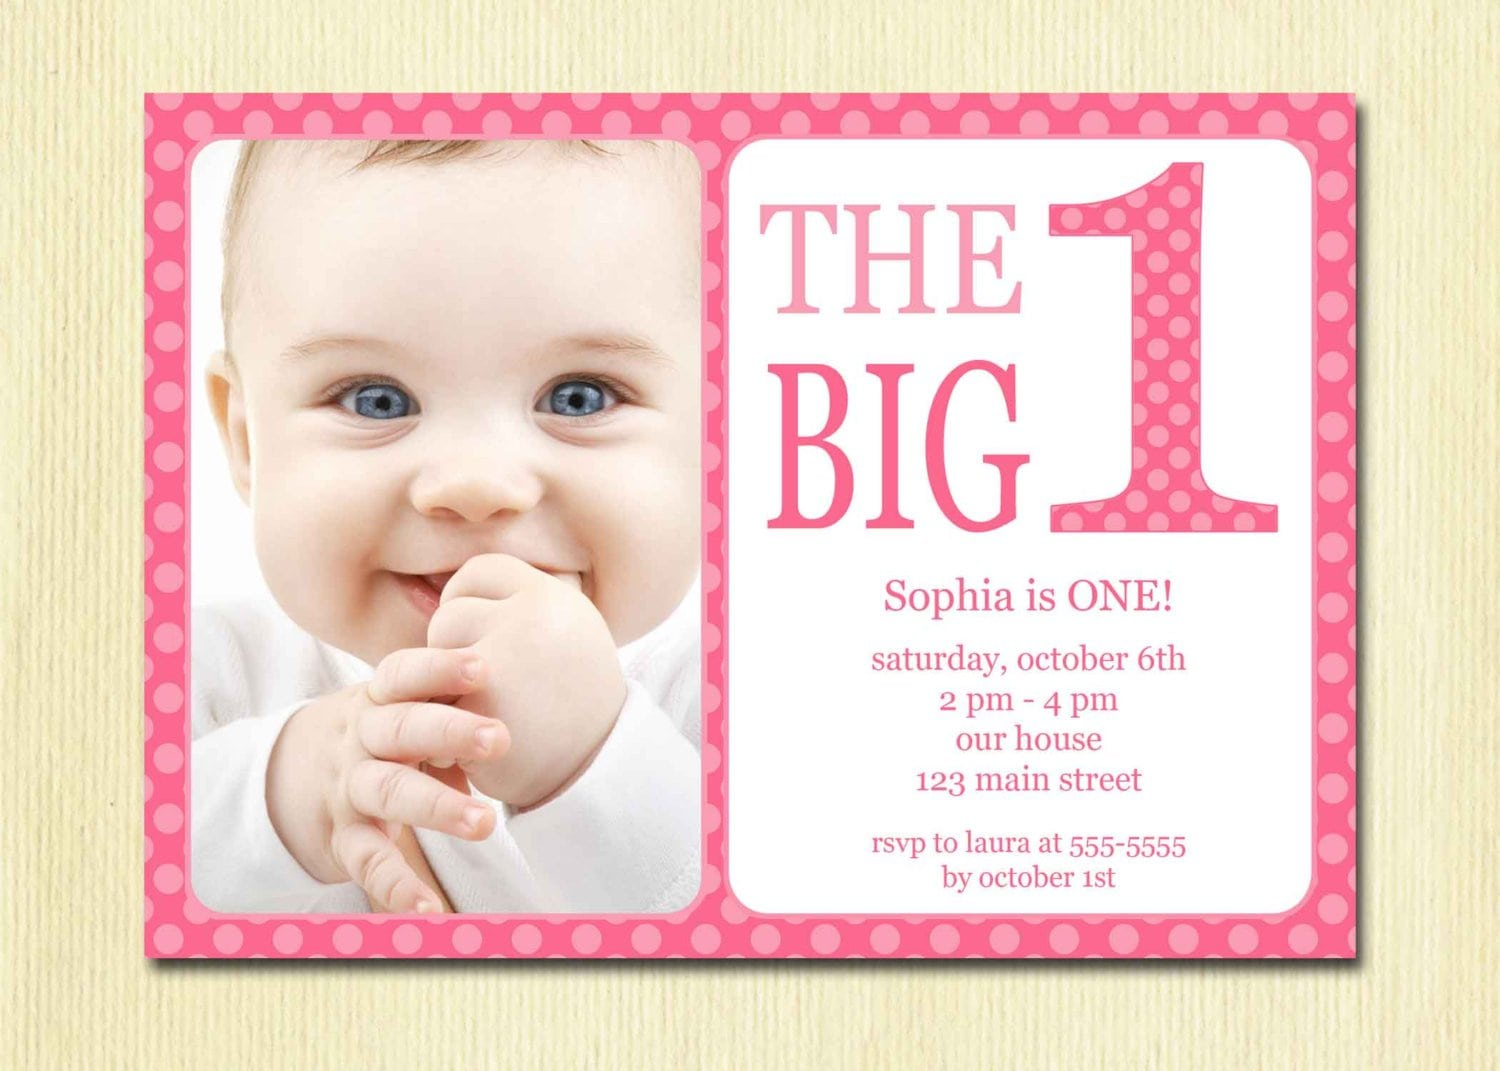 3Rd Birthday Invitation Wording Samples with awesome invitations template